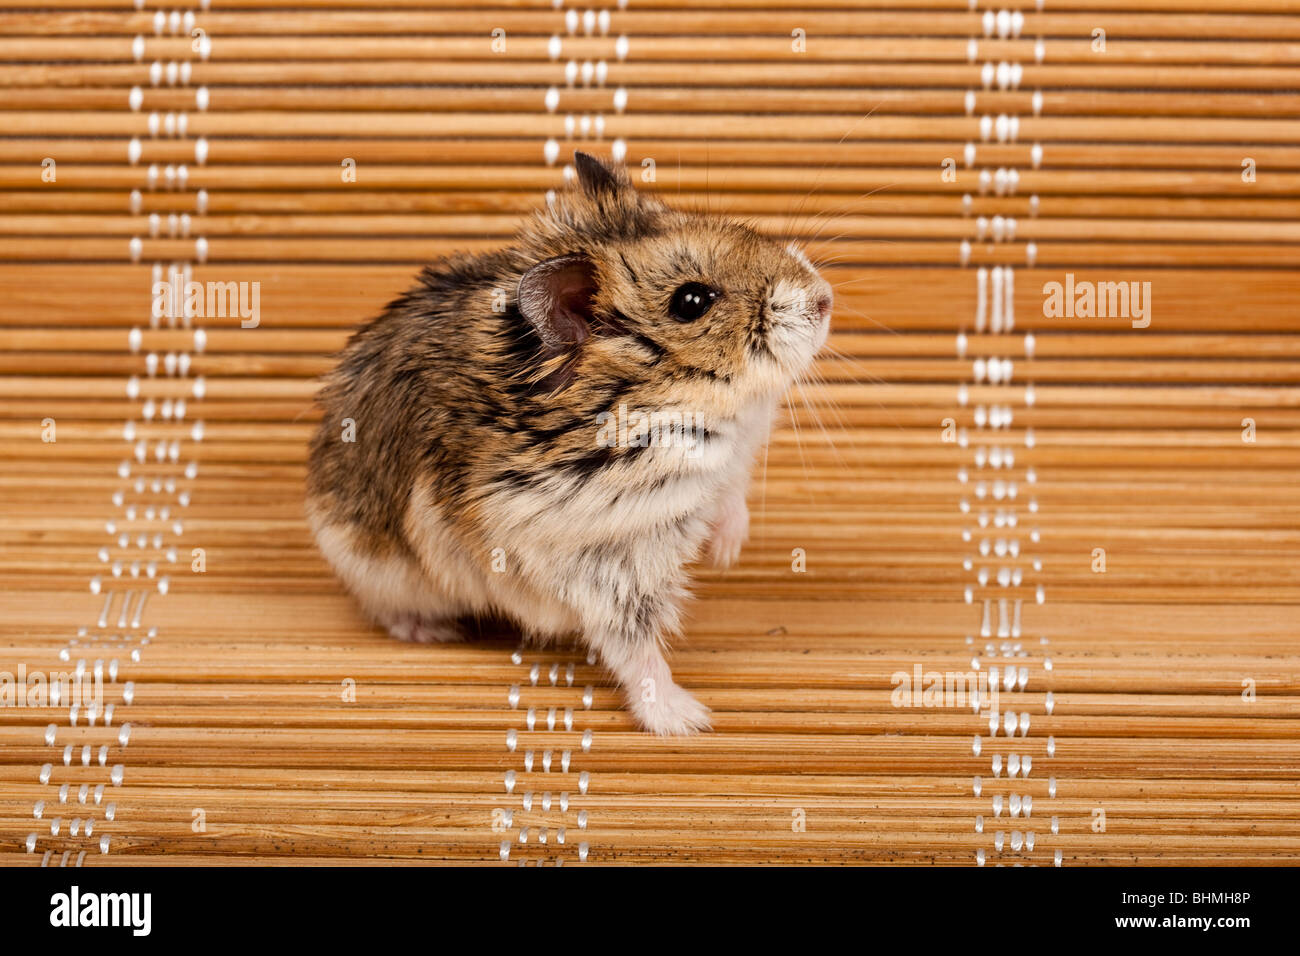 84de3979ac0 Winter White Russian Dwarf Hamster. The photo is made in studio. - Stock  Image